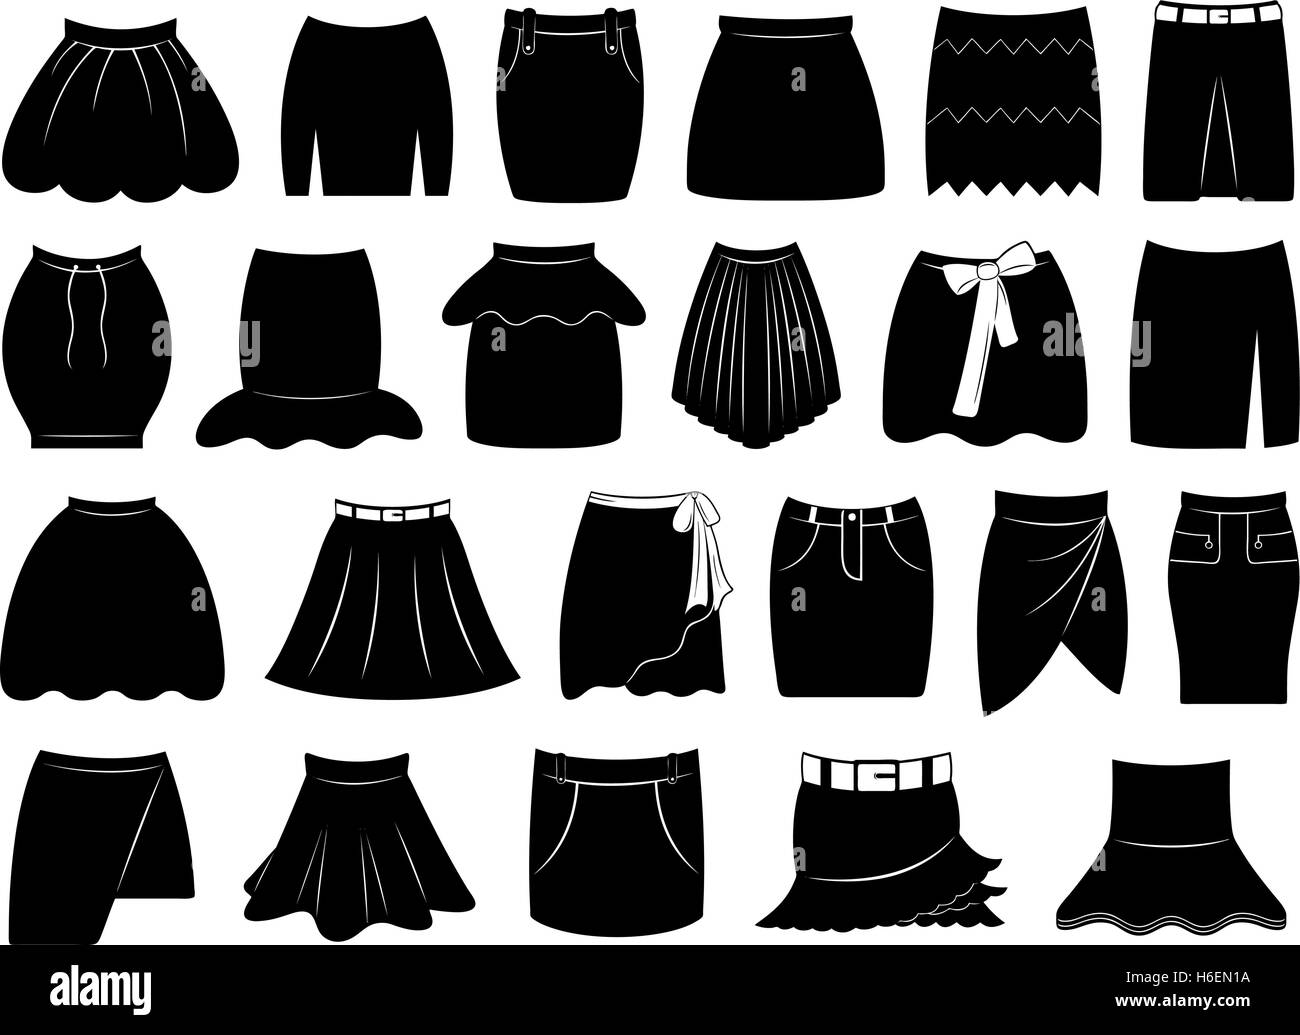 Set of different skirts - Stock Vector